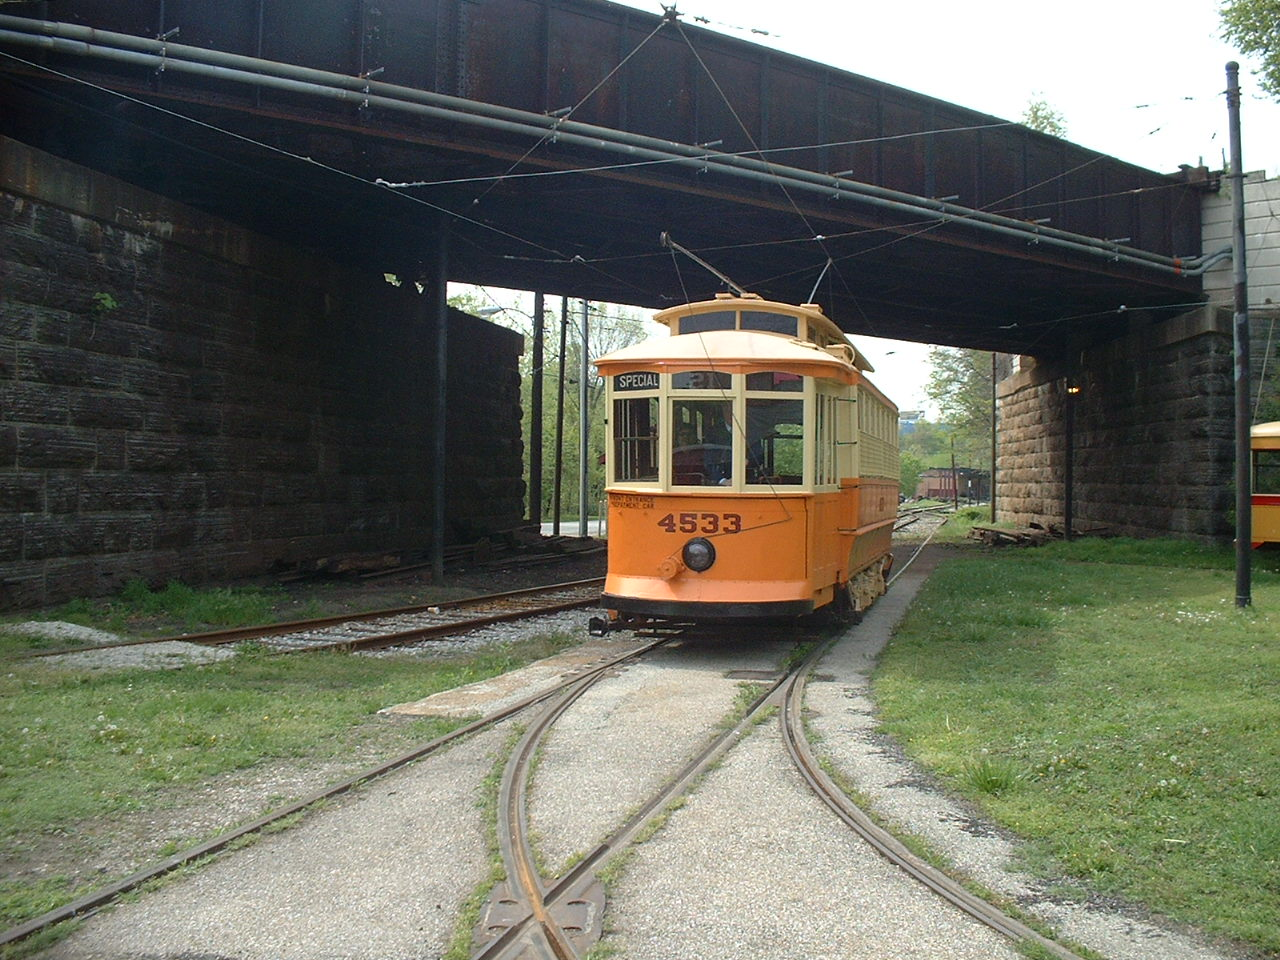 (296k, 1280x960)<br><b>Country:</b> United States<br><b>City:</b> Baltimore, MD<br><b>System:</b> Baltimore Streetcar Museum <br><b>Car:</b>  4533 <br><b>Photo by:</b> Dan Lawrence<br><b>Date:</b> 4/27/2002<br><b>Viewed (this week/total):</b> 0 / 2006